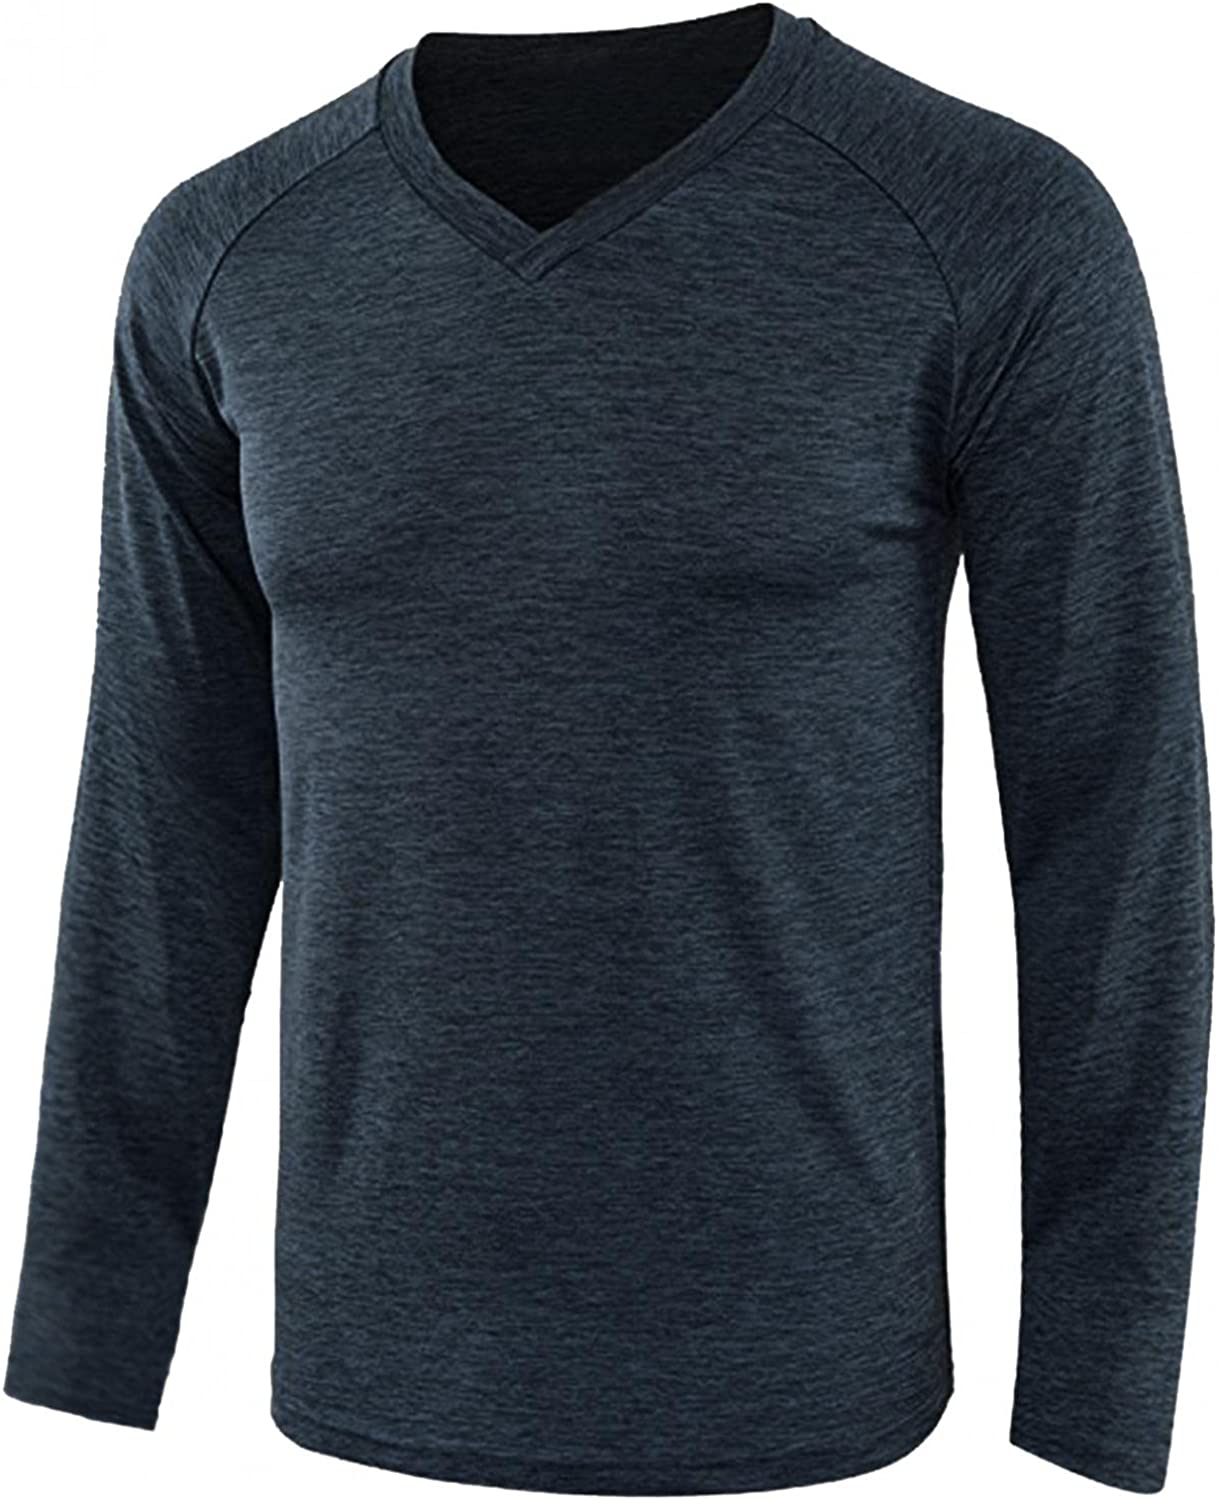 WoCoo Mens Pullover Shirts Soft Cozy V-Neck Sweatershirts Lightweight Breathable Tops Casual Loose Blouse